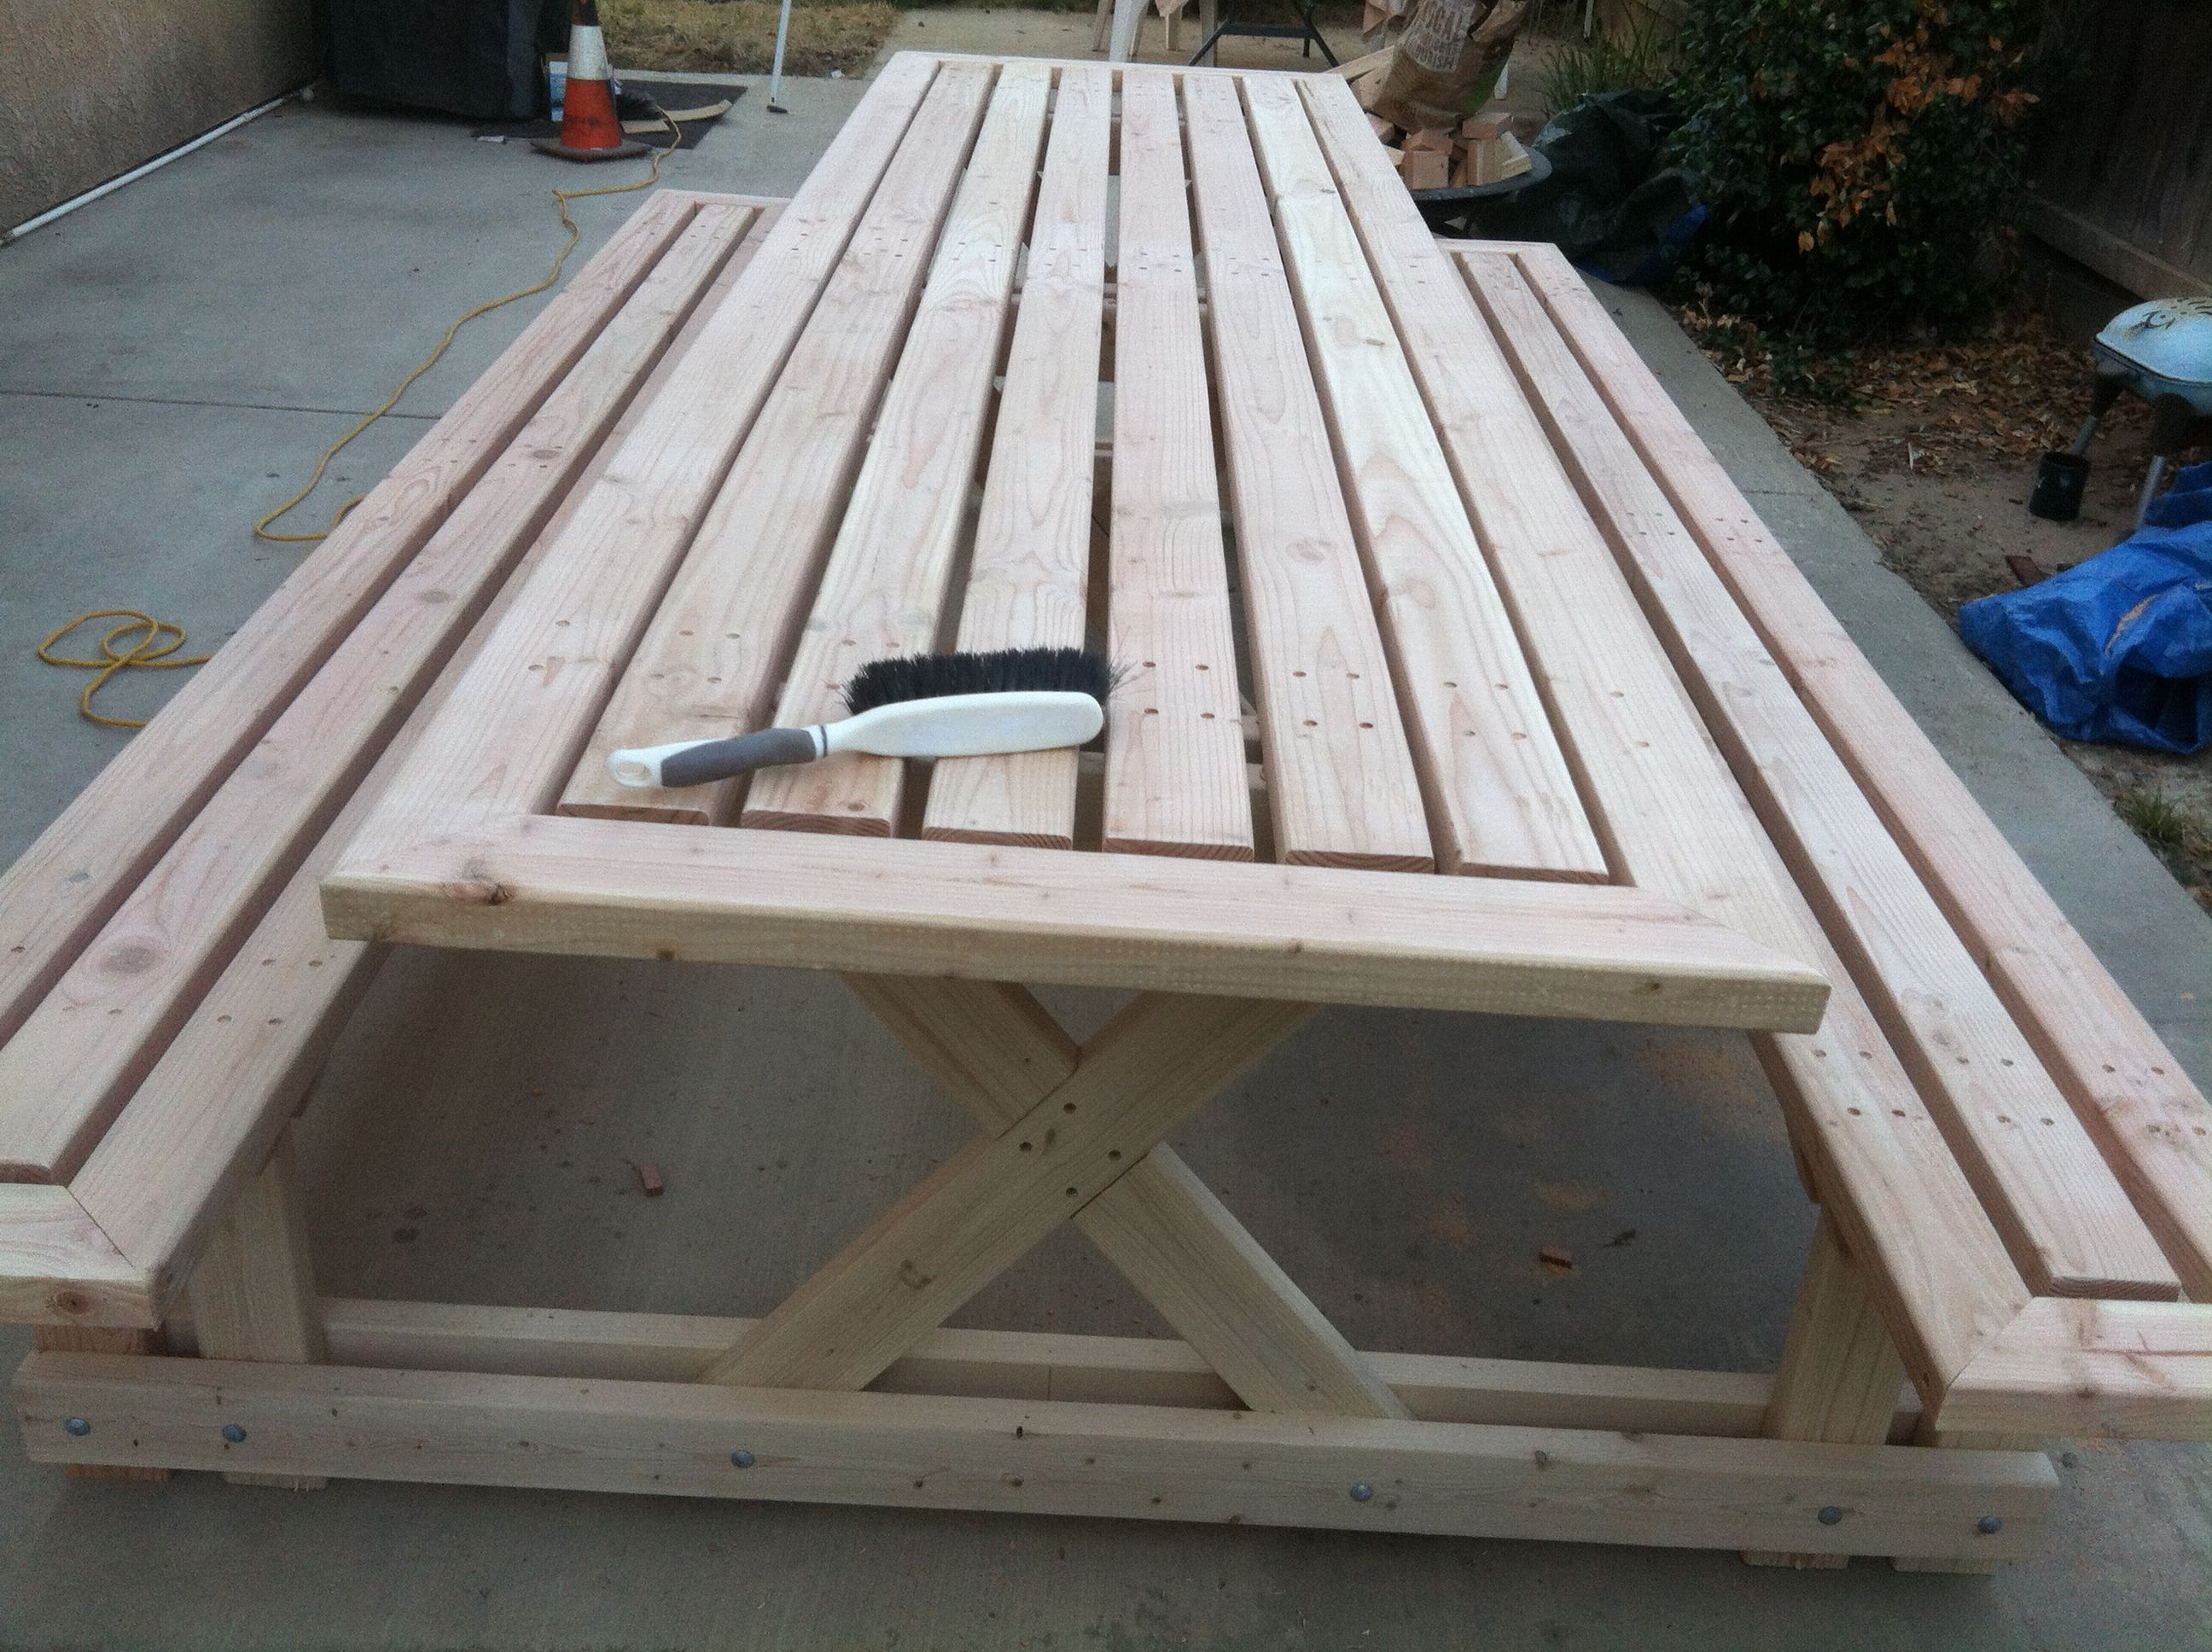 10 Ft Picnic Table Using 2x4 Doug Fir Picnic Table Woodworking Plans Picnic Table Plans Diy Picnic Table